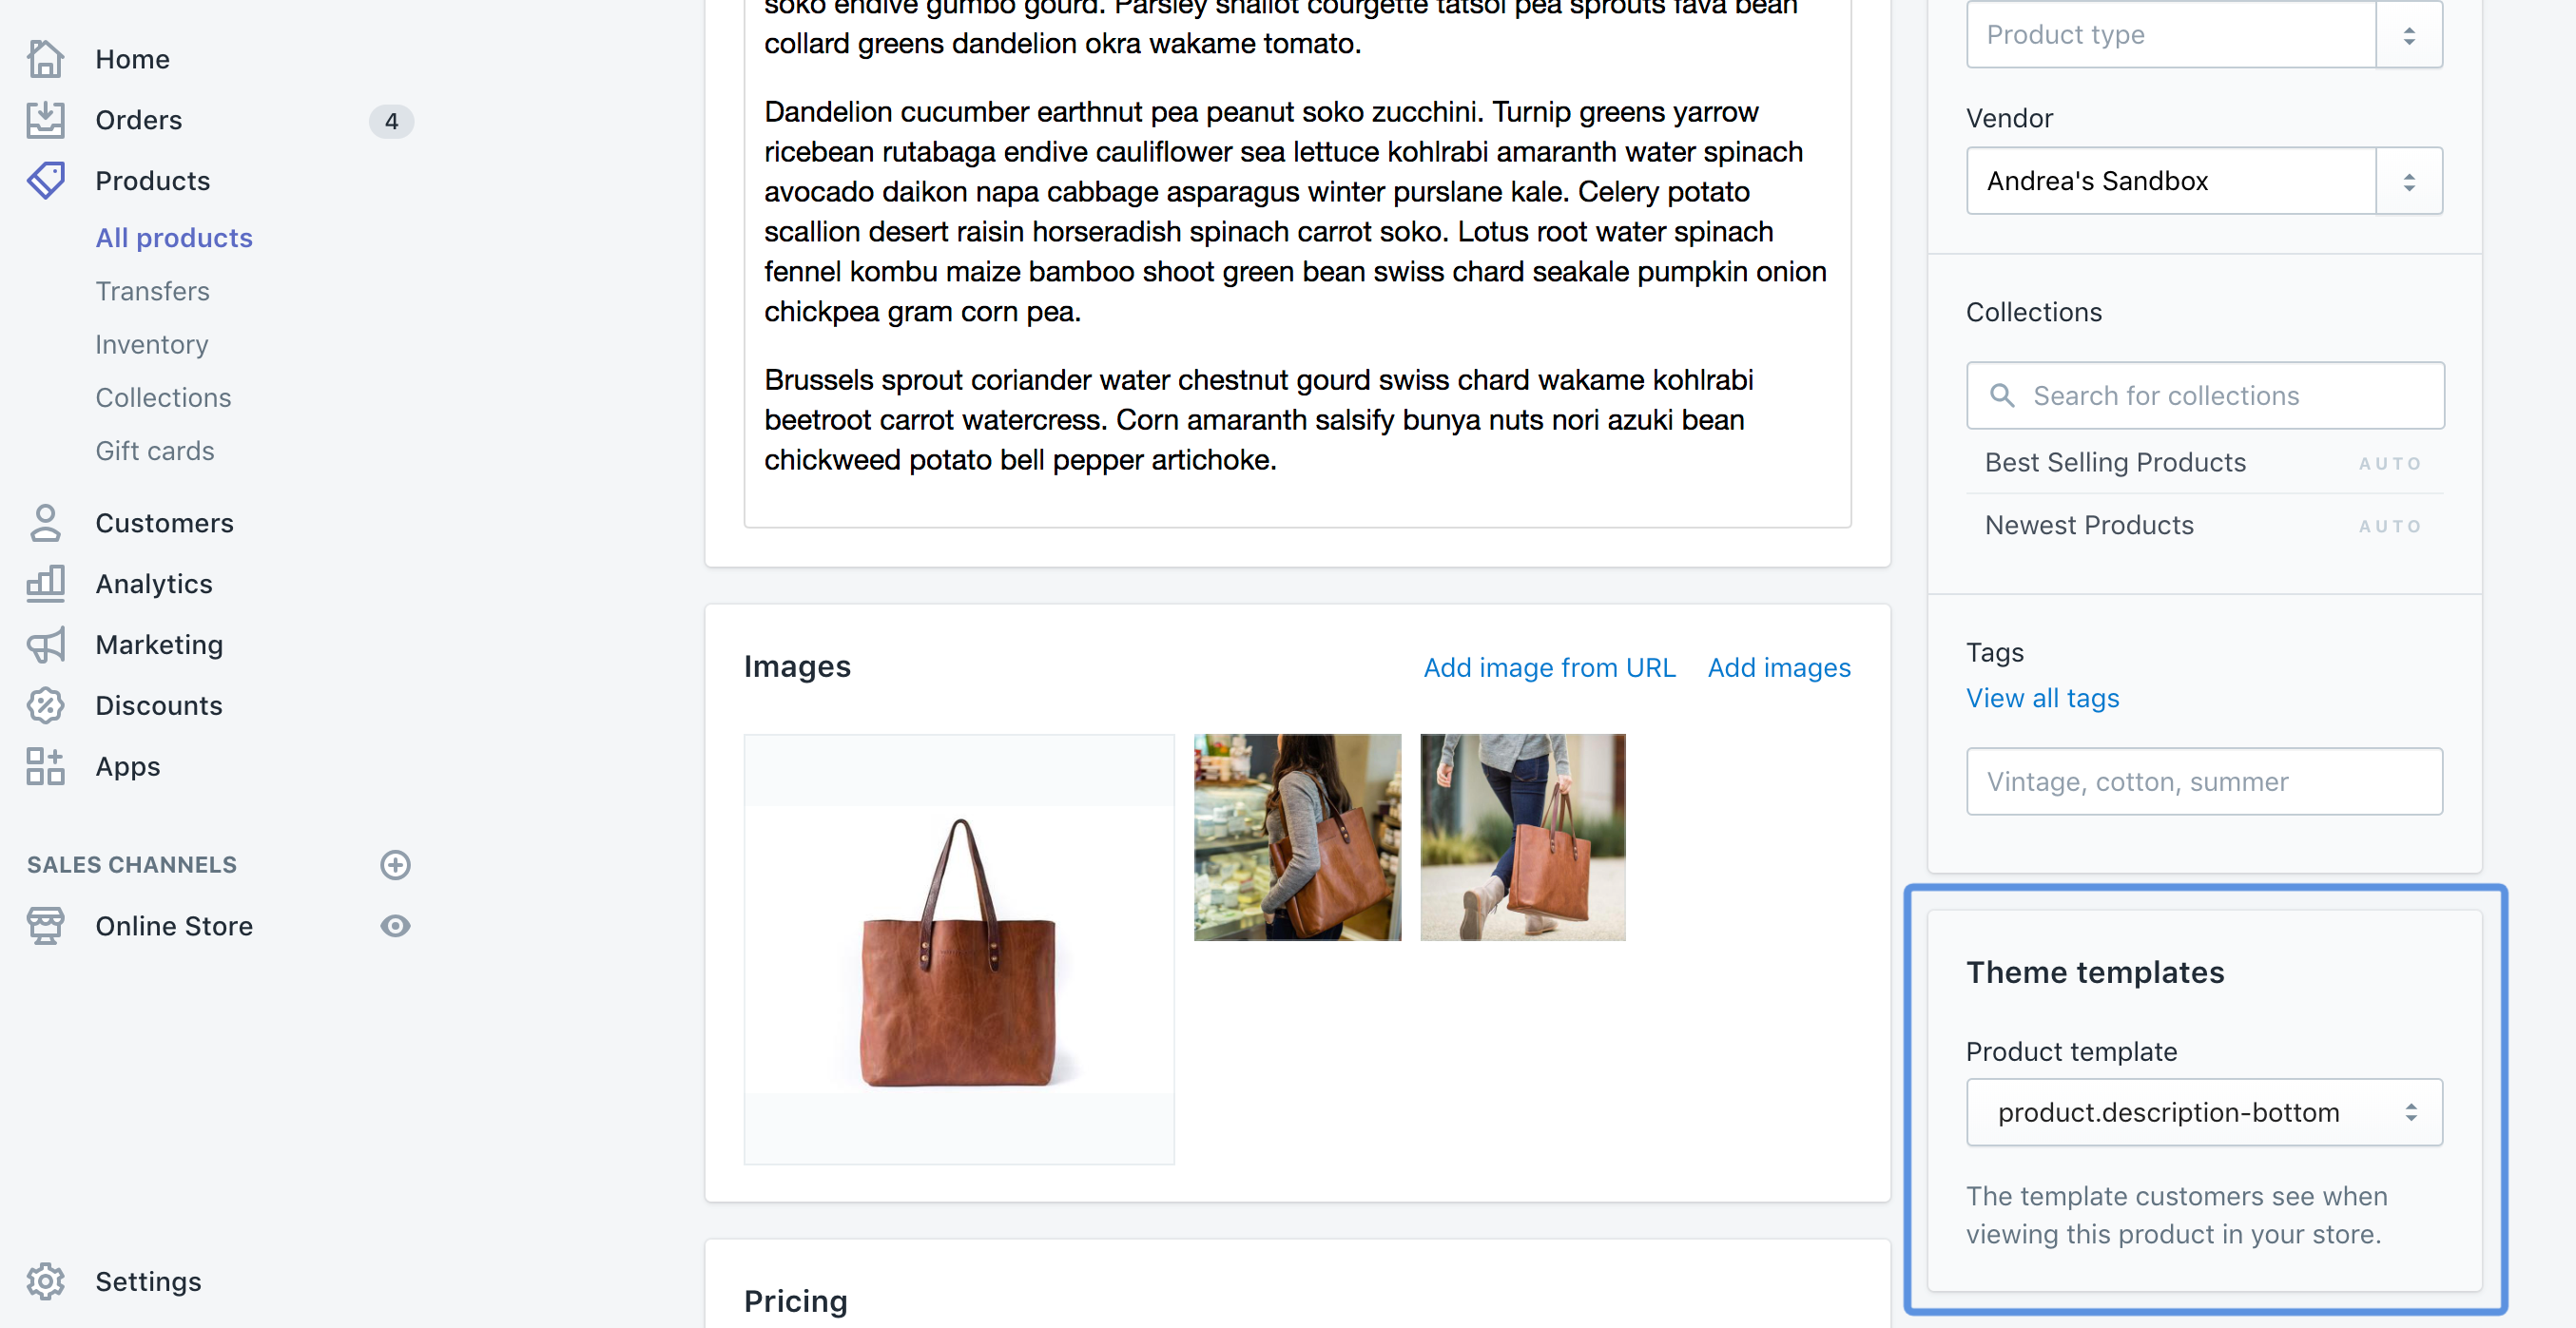 product-description-bottom-template.png